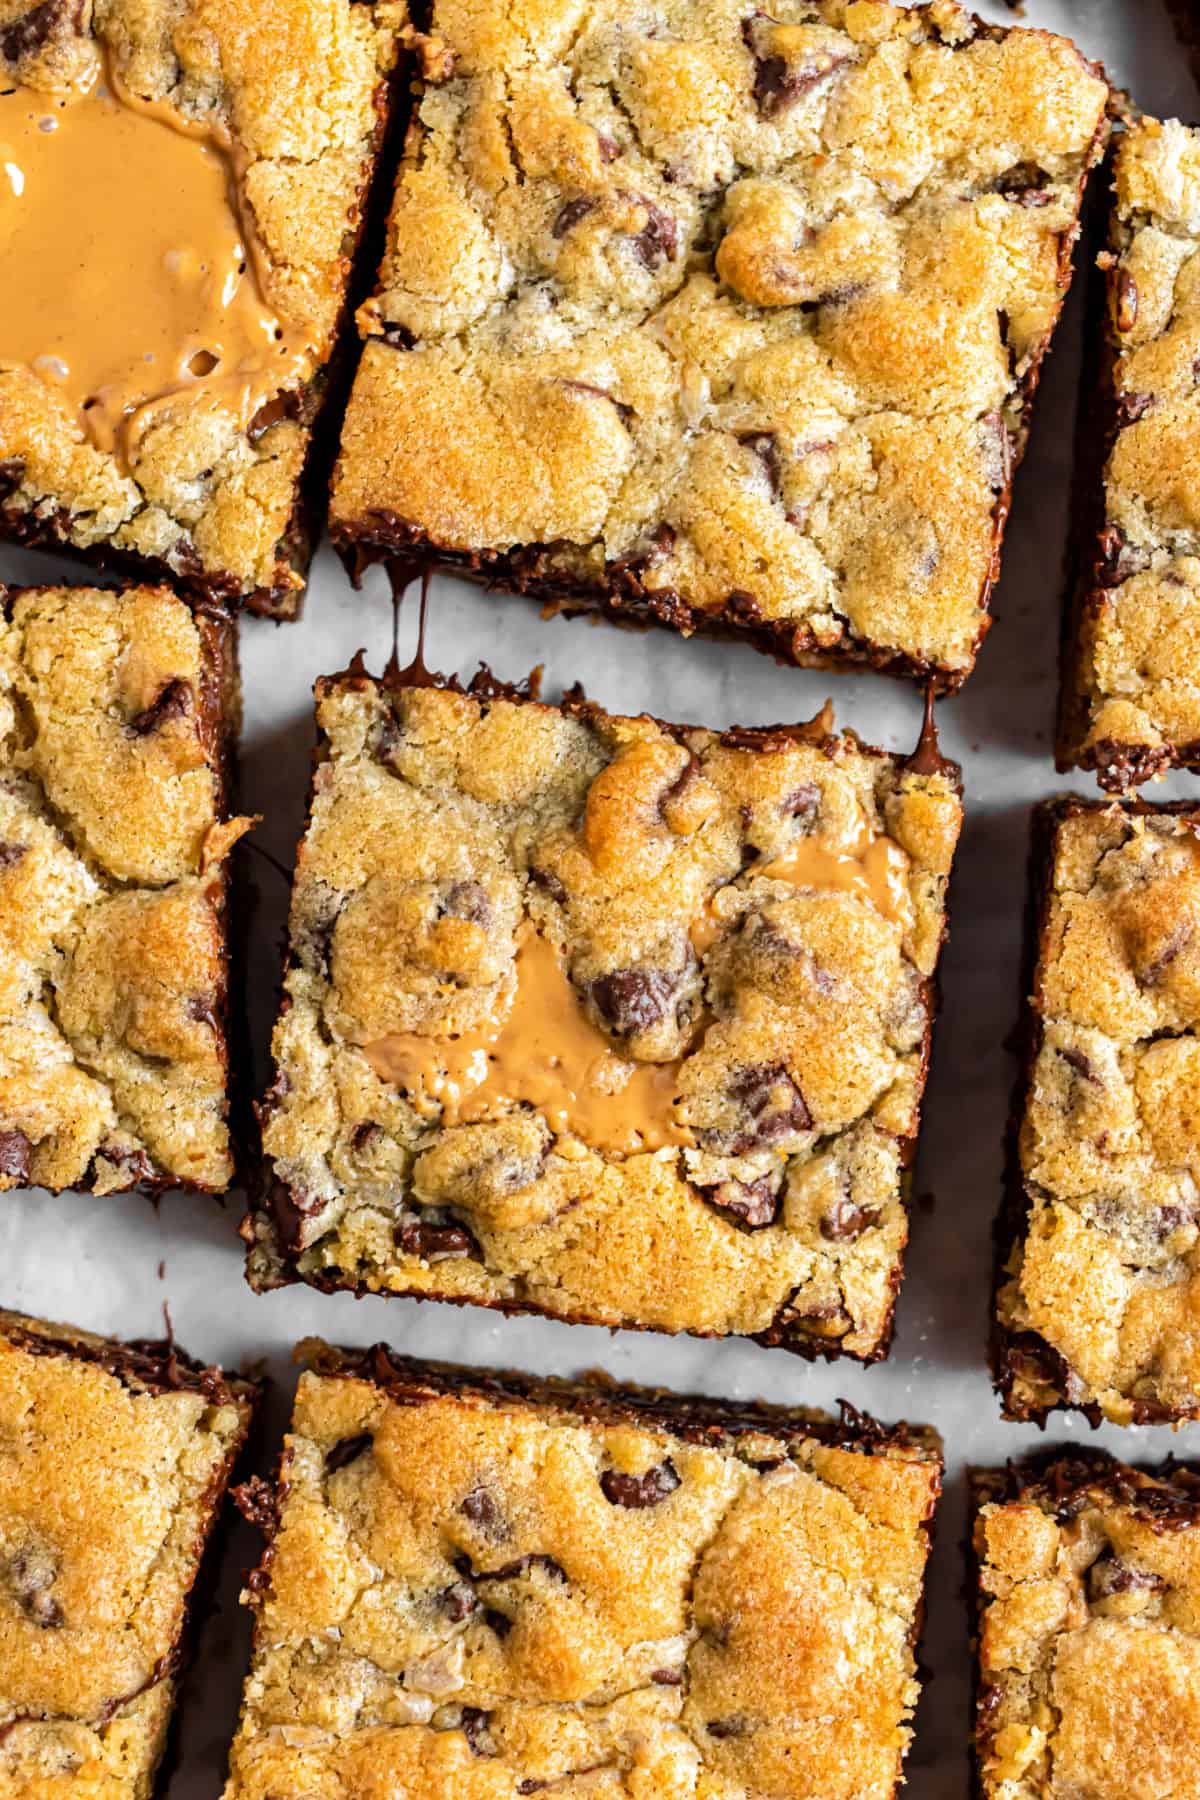 Chocolate chip peanut butter swirled cookie bars on a parchment paper lined baking sheet.